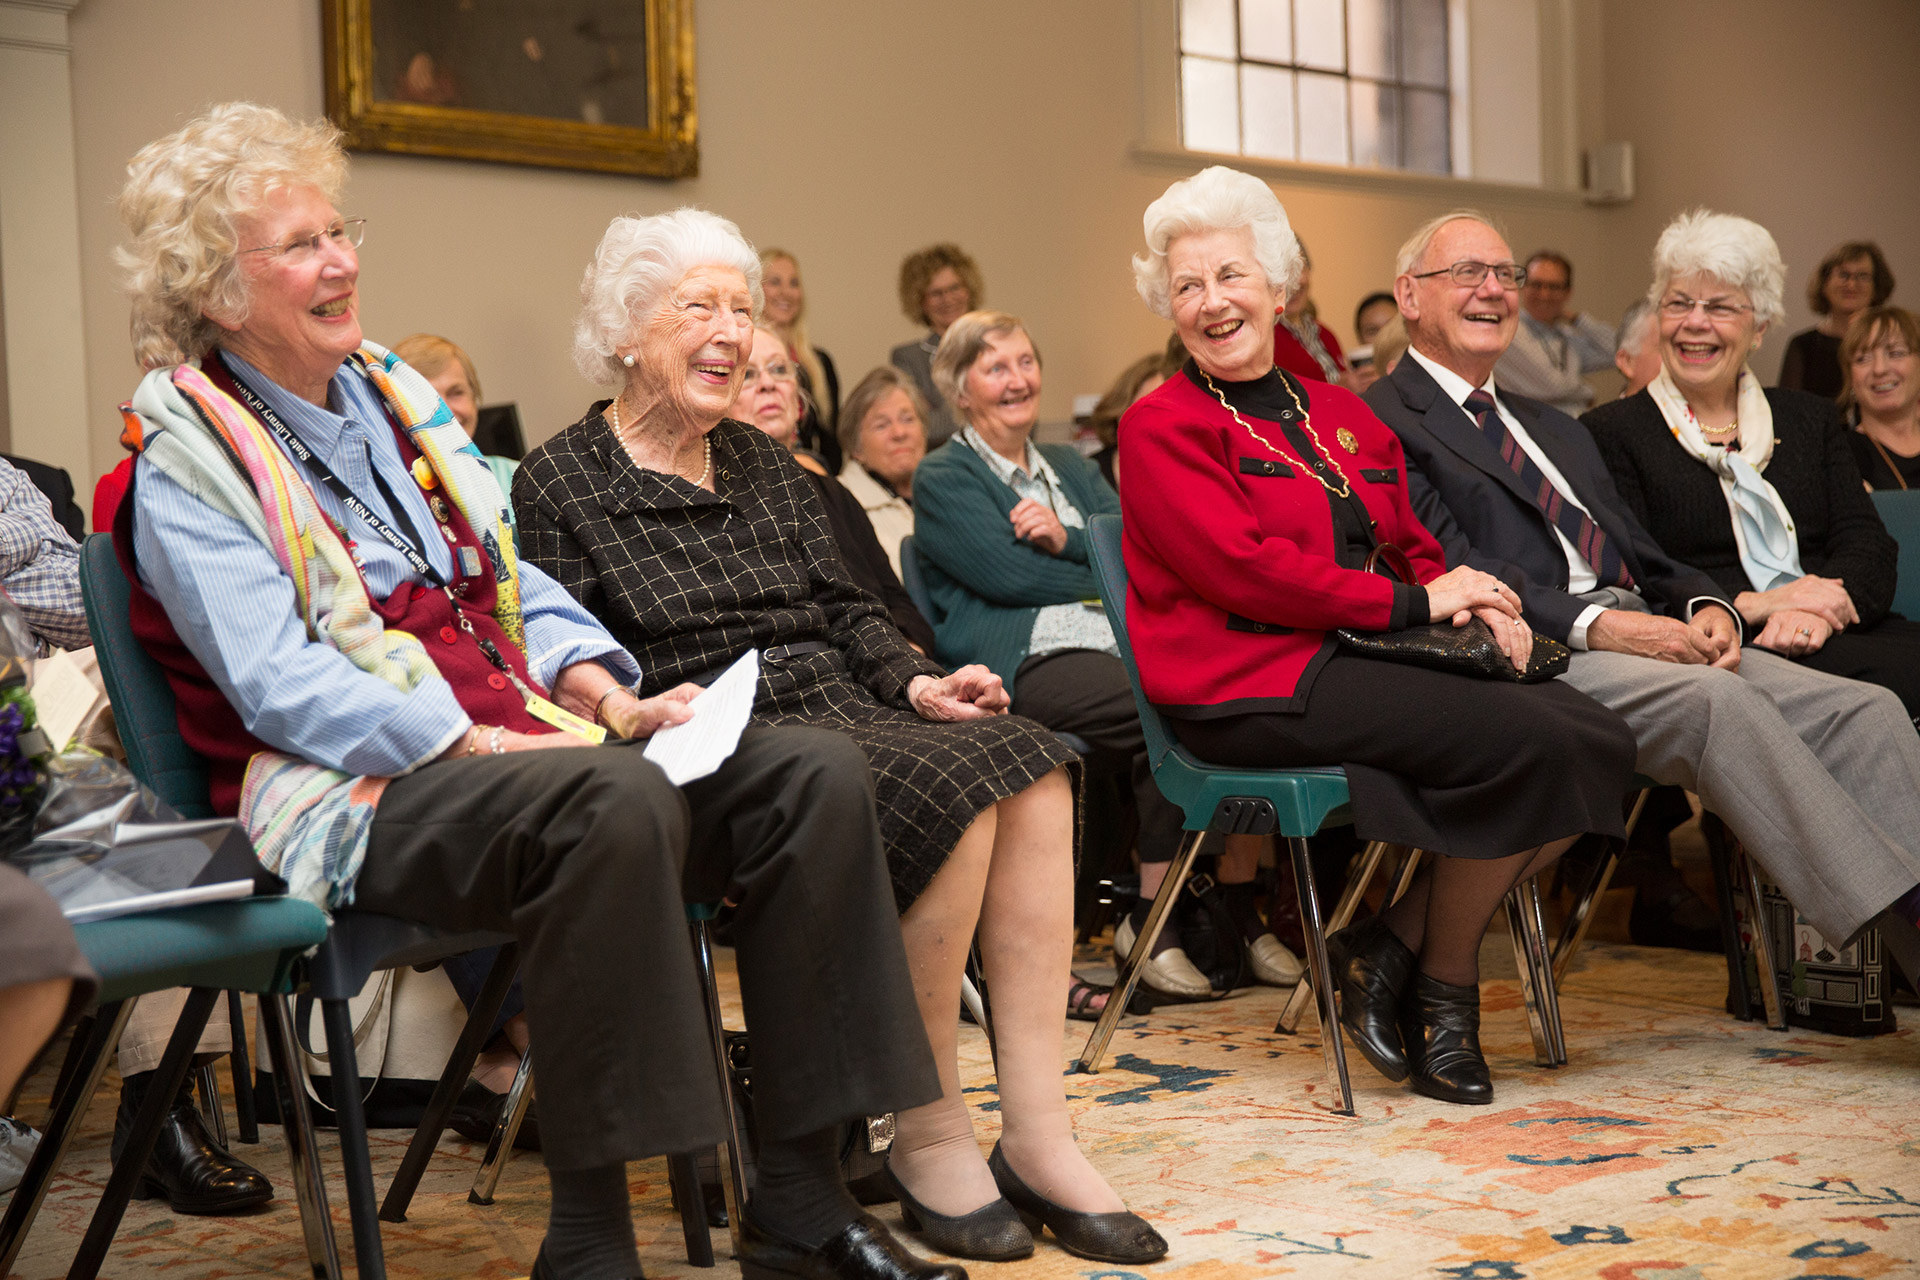 Several women sitting on chairs and smiling